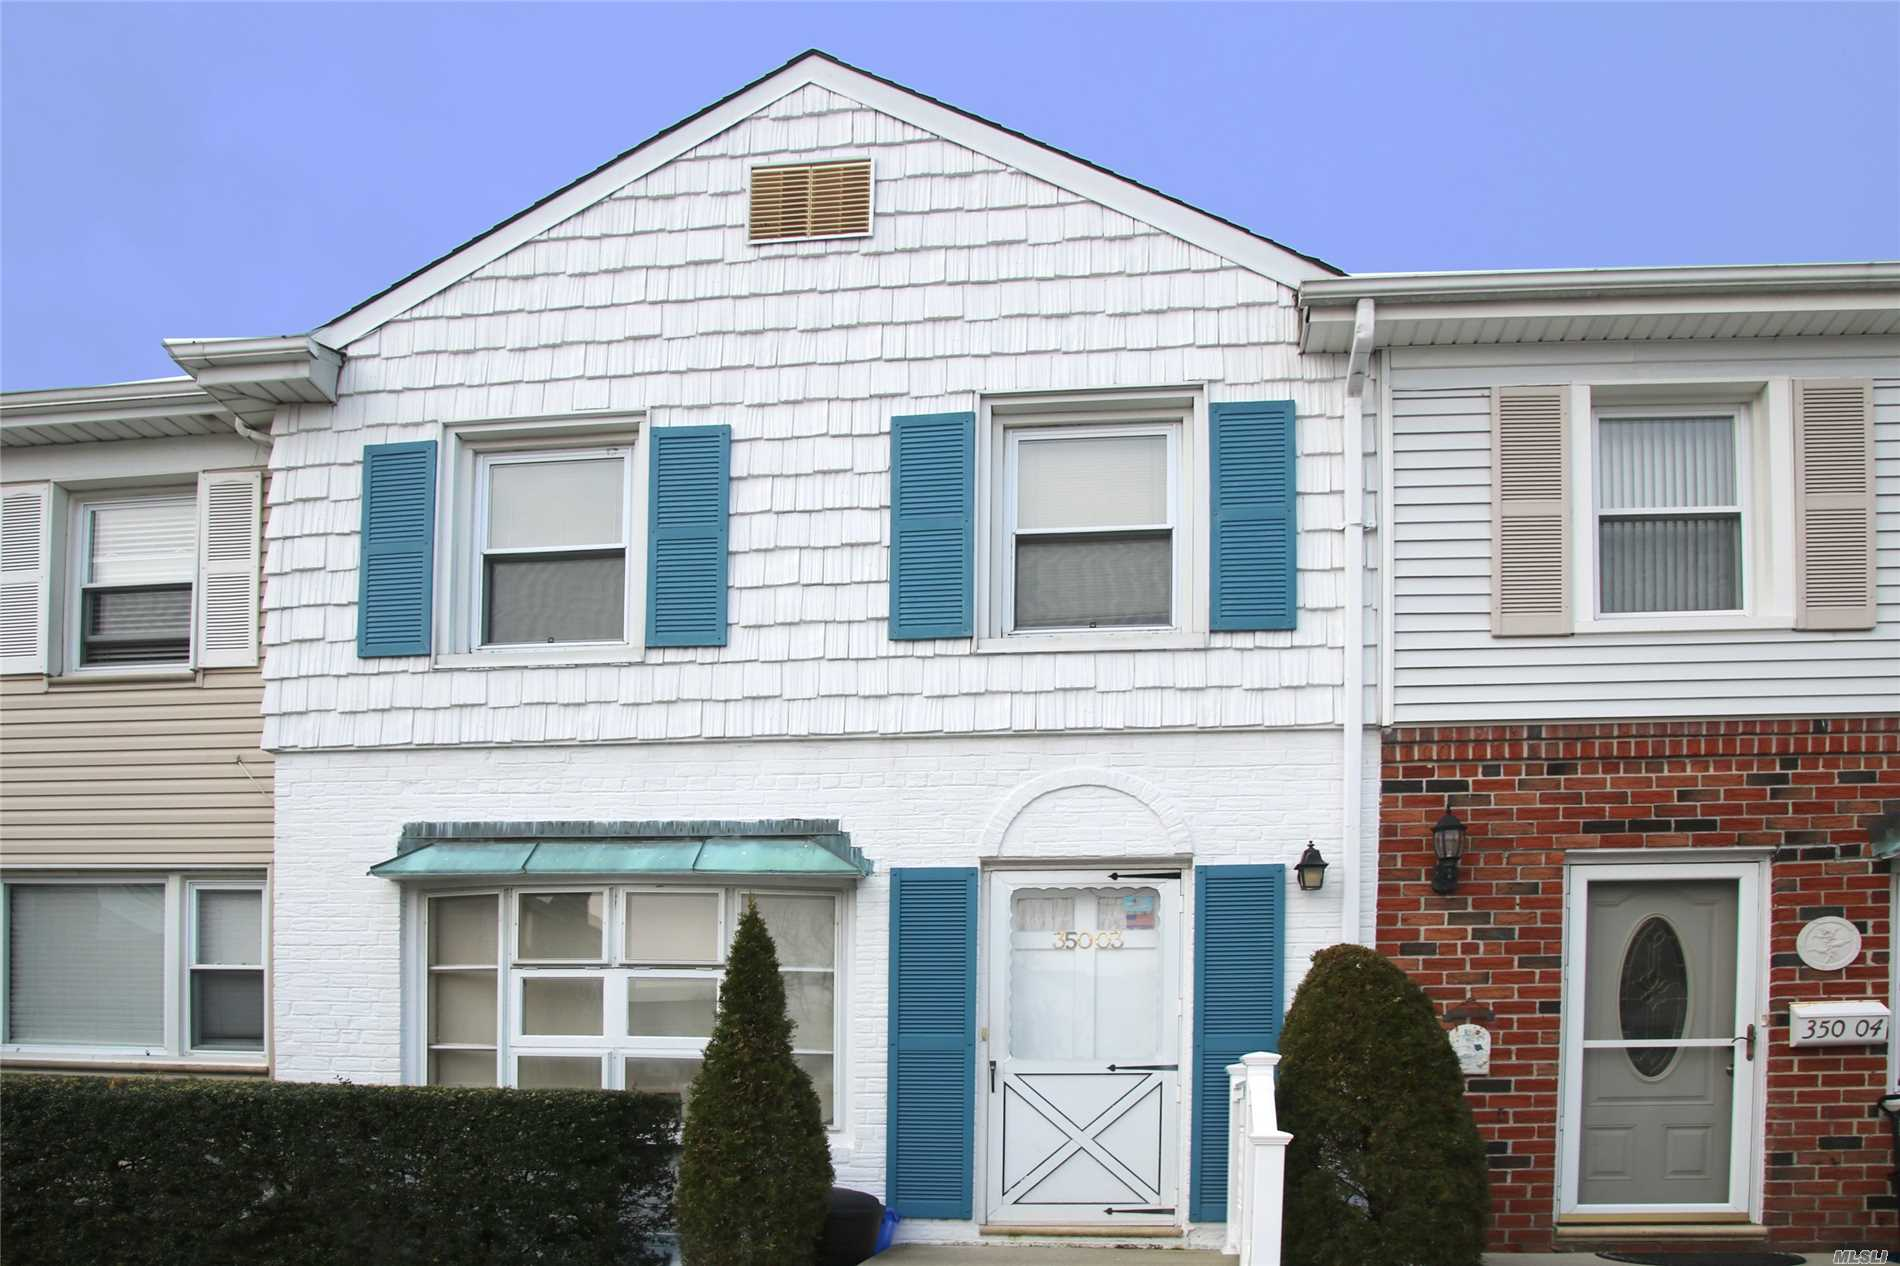 3 Br condo in excellent location - close to transportation, shopping, and many more! LIRR/NYC Trains close by.